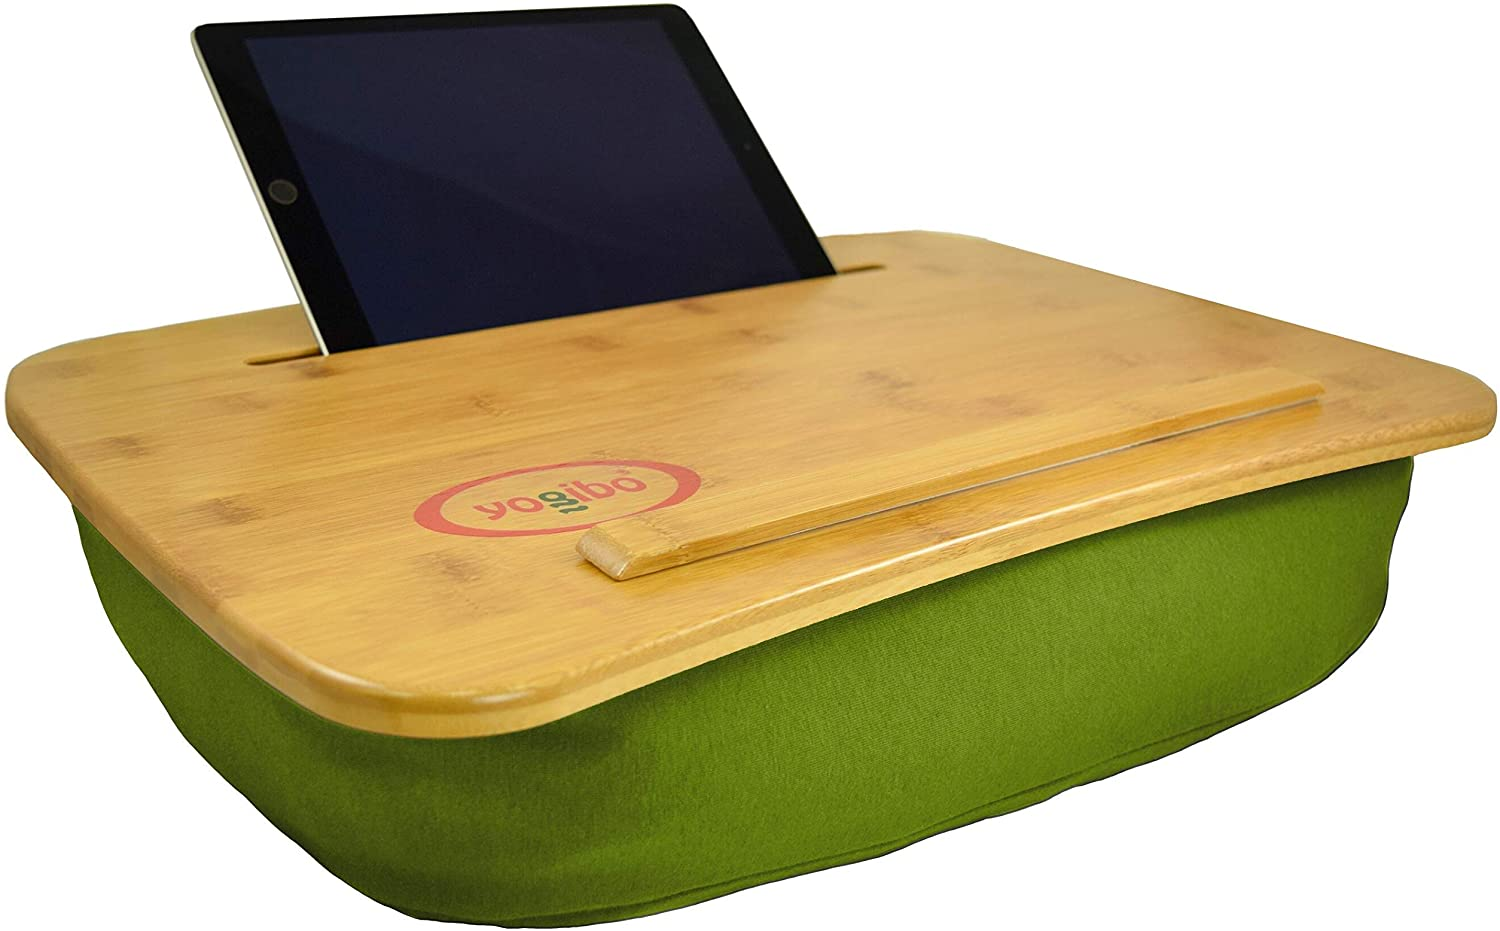 Yogibo Traybo 2.0 Lap Desk, Bamboo Top Lap Desk With Pillow for Laptop Built in Slot for Tablet or Phone, Lap Pad for Working, Reading, Writing, Lap Board, Green